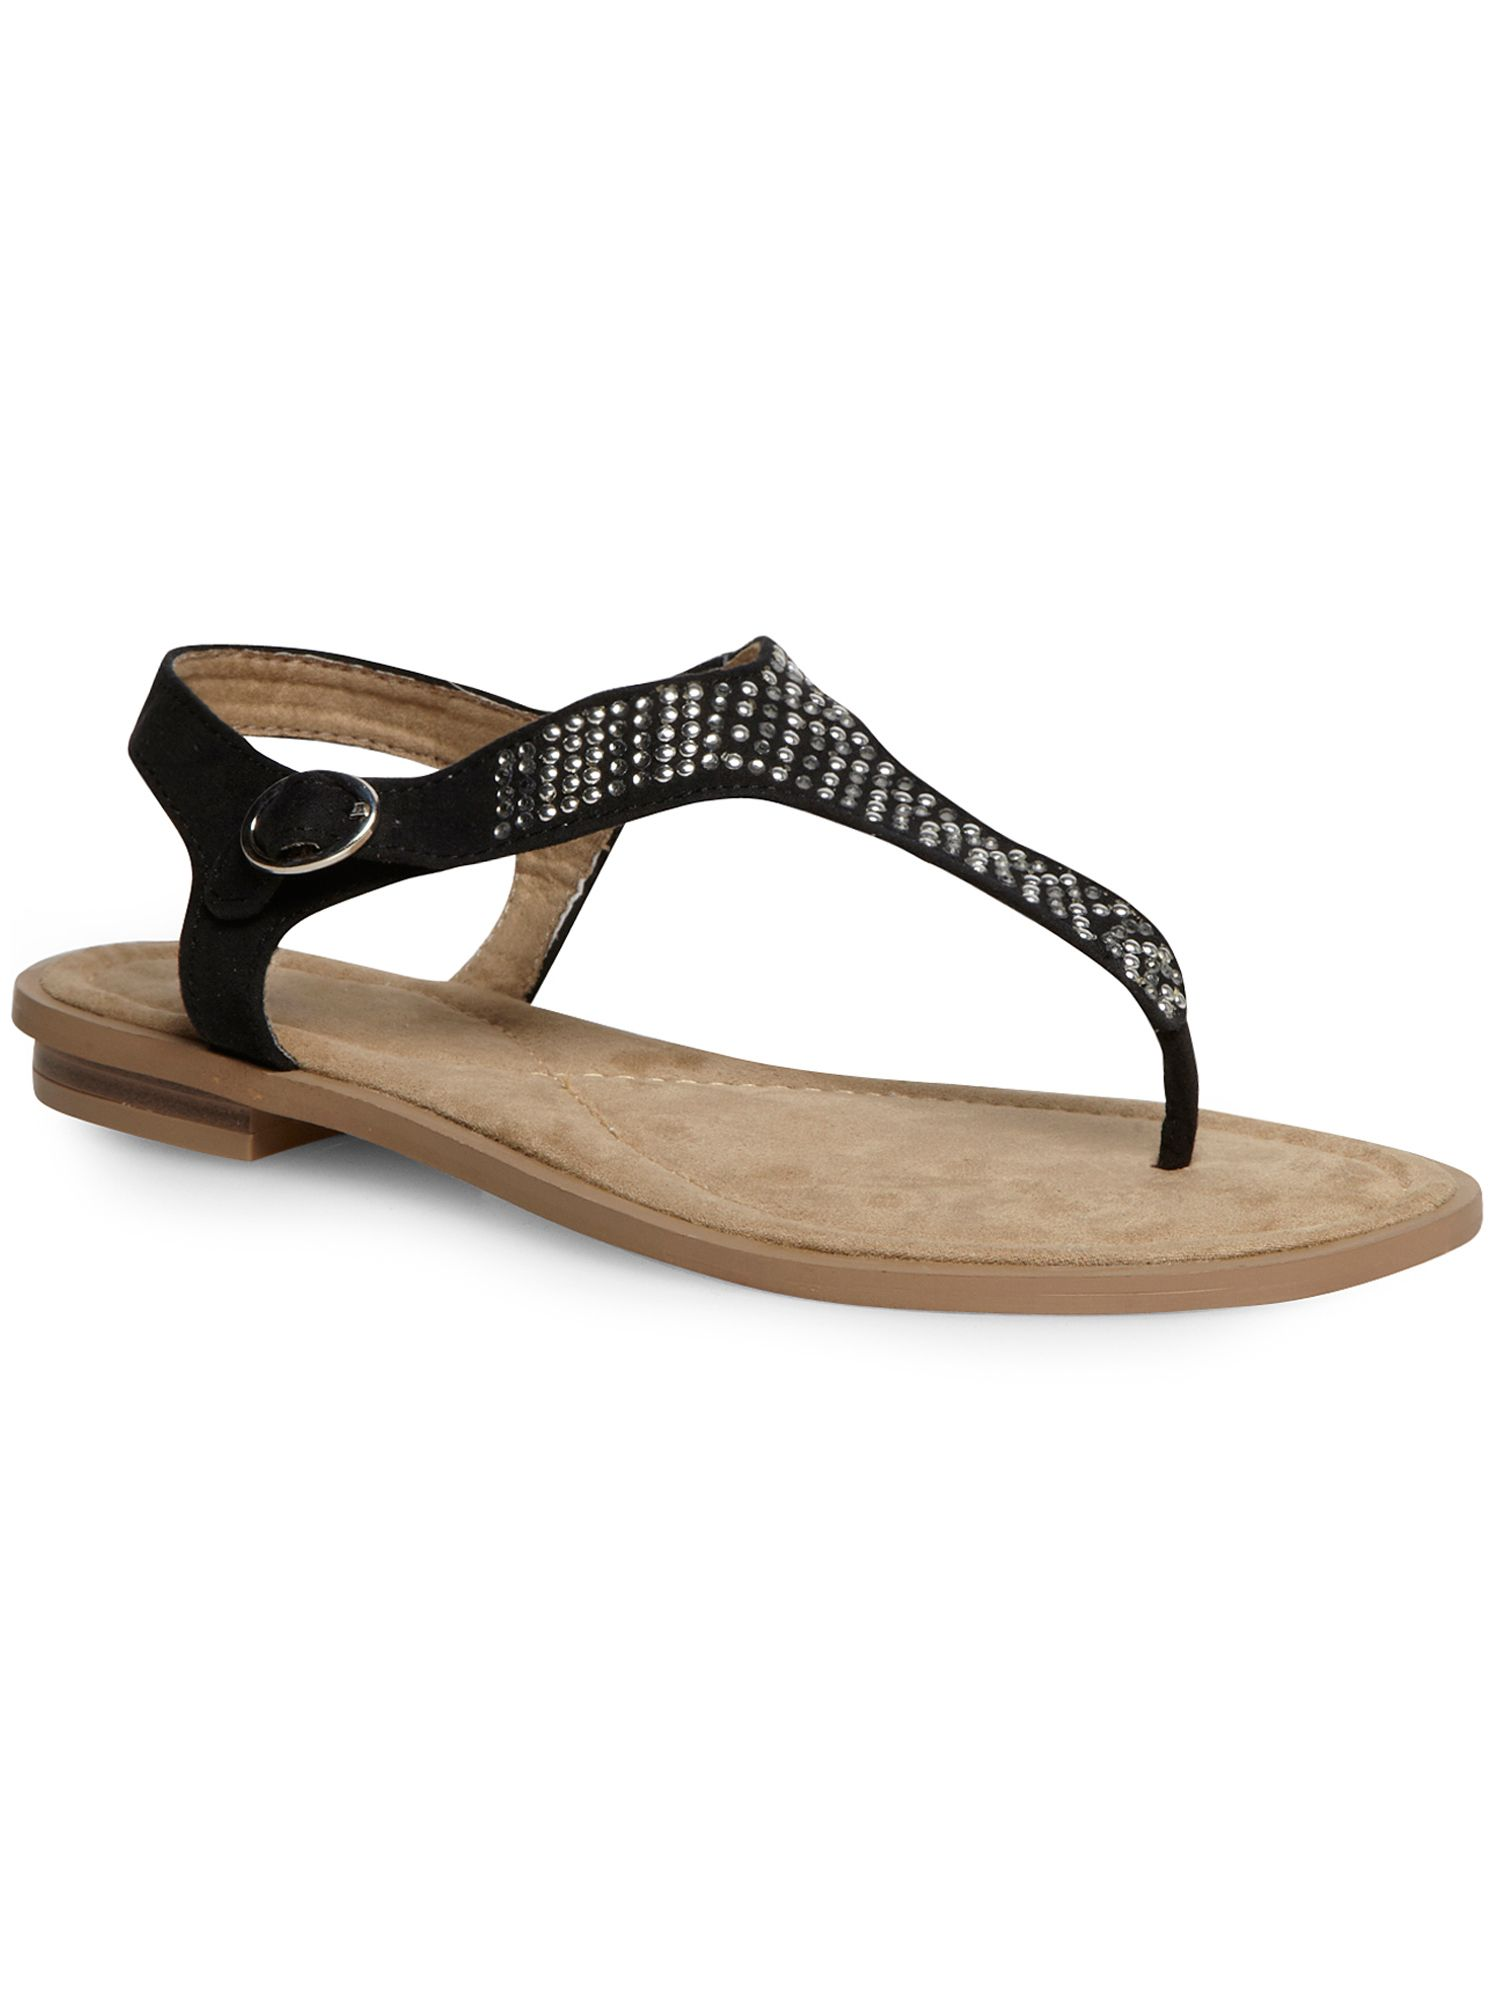 Black embellished toe-post sandal